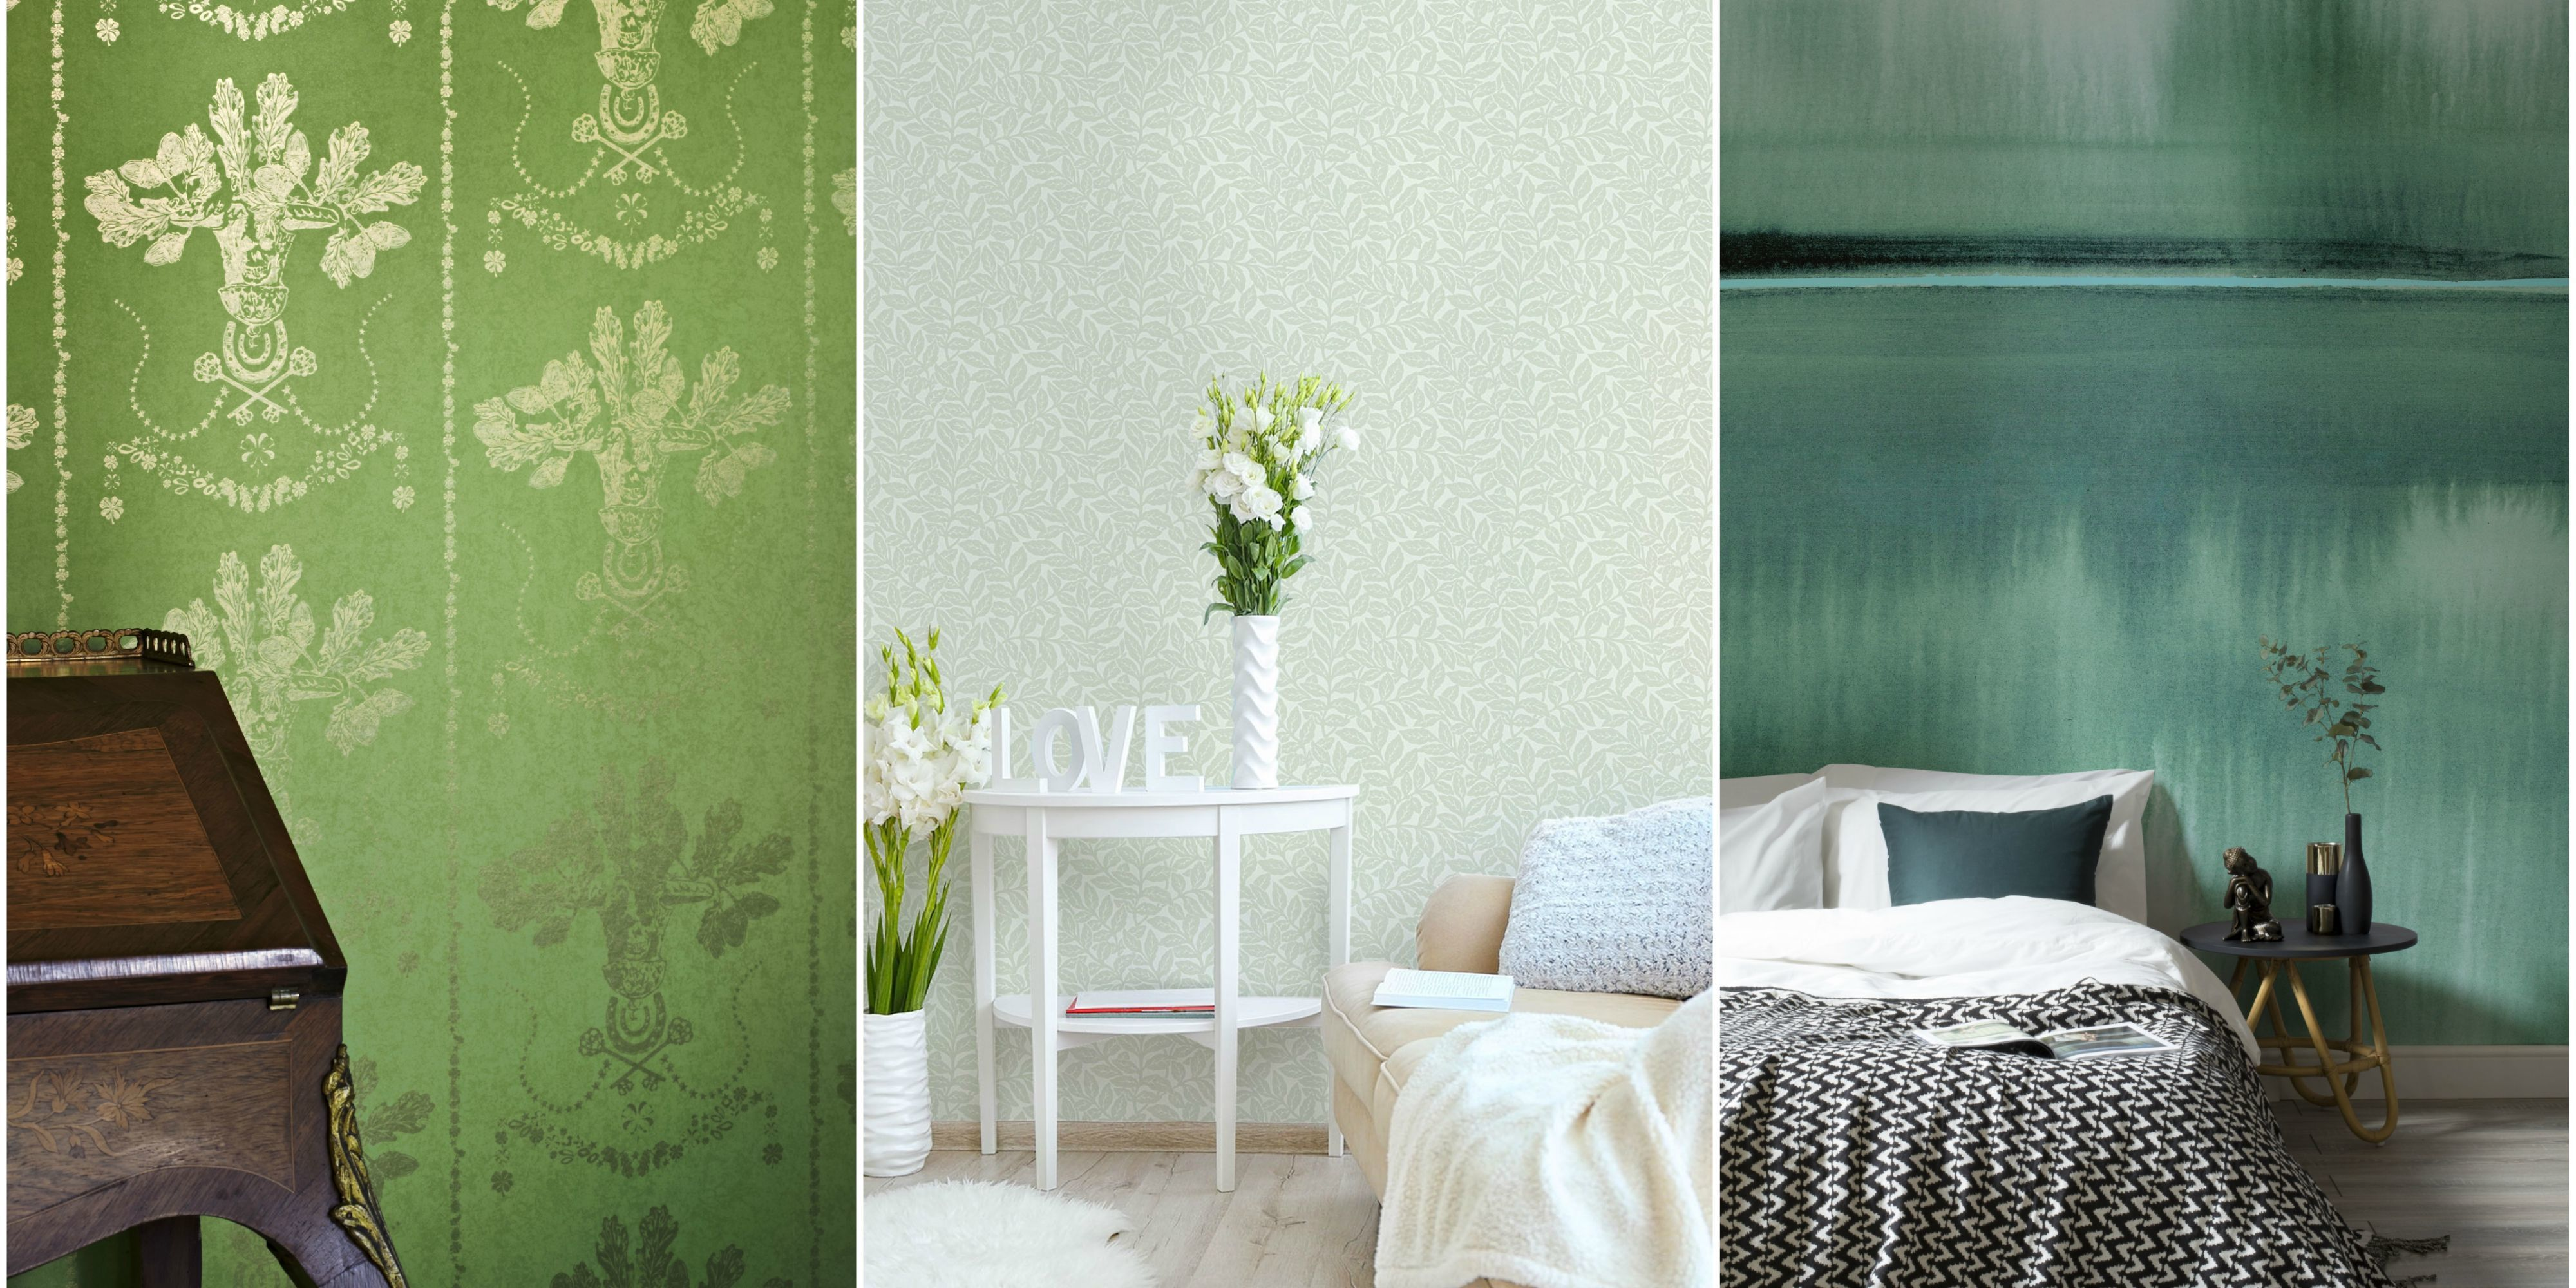 With Greenery Named As Pantoneu0027s Colour Of The Year For 2017, Get Some  Inspiration From These Stunning Wallpapers All In Different Shades Of Green.